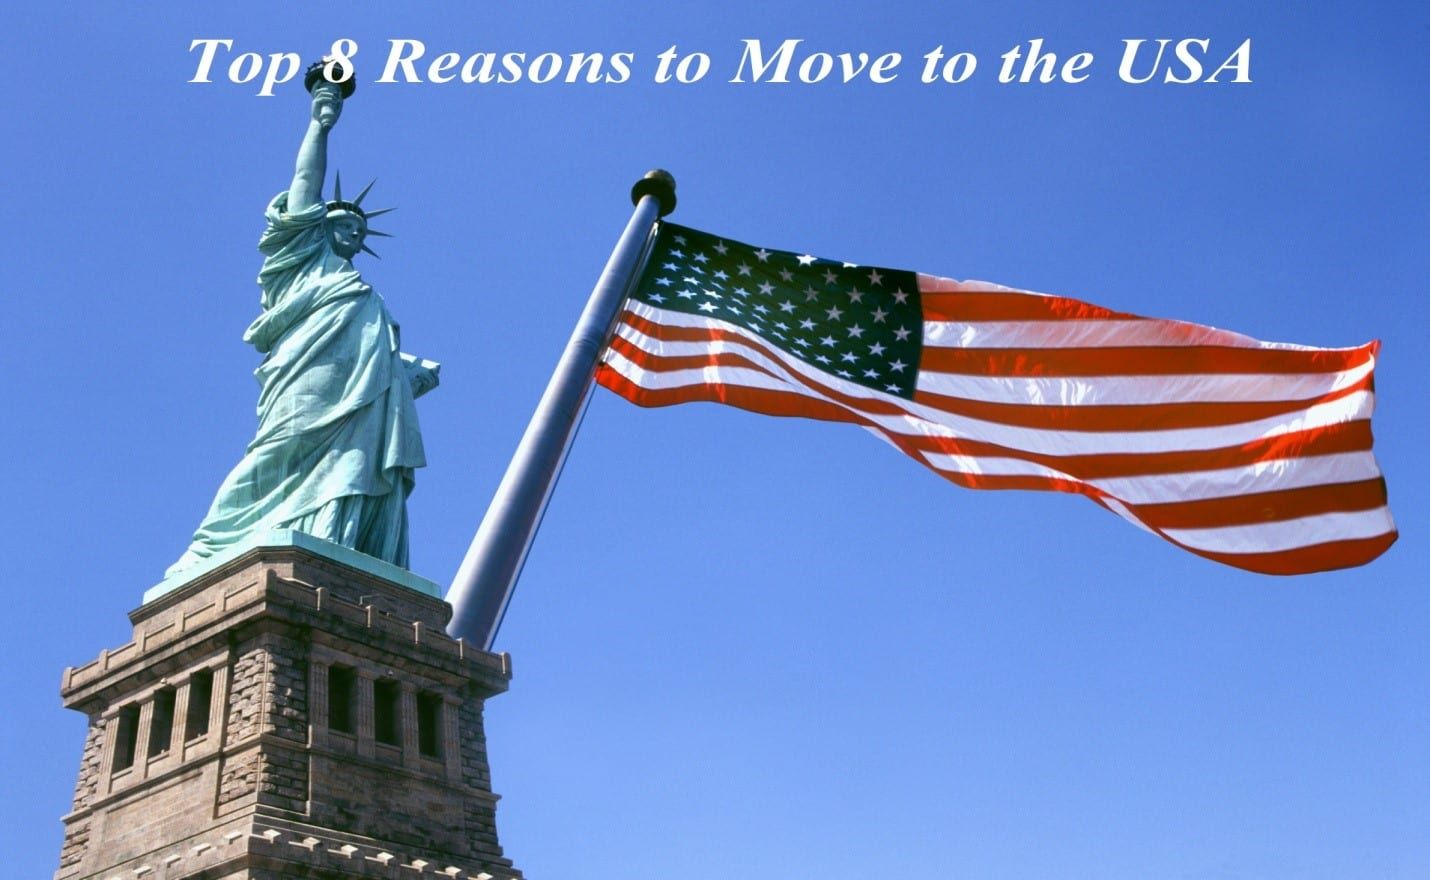 Top 8 Reasons to Move to the USA